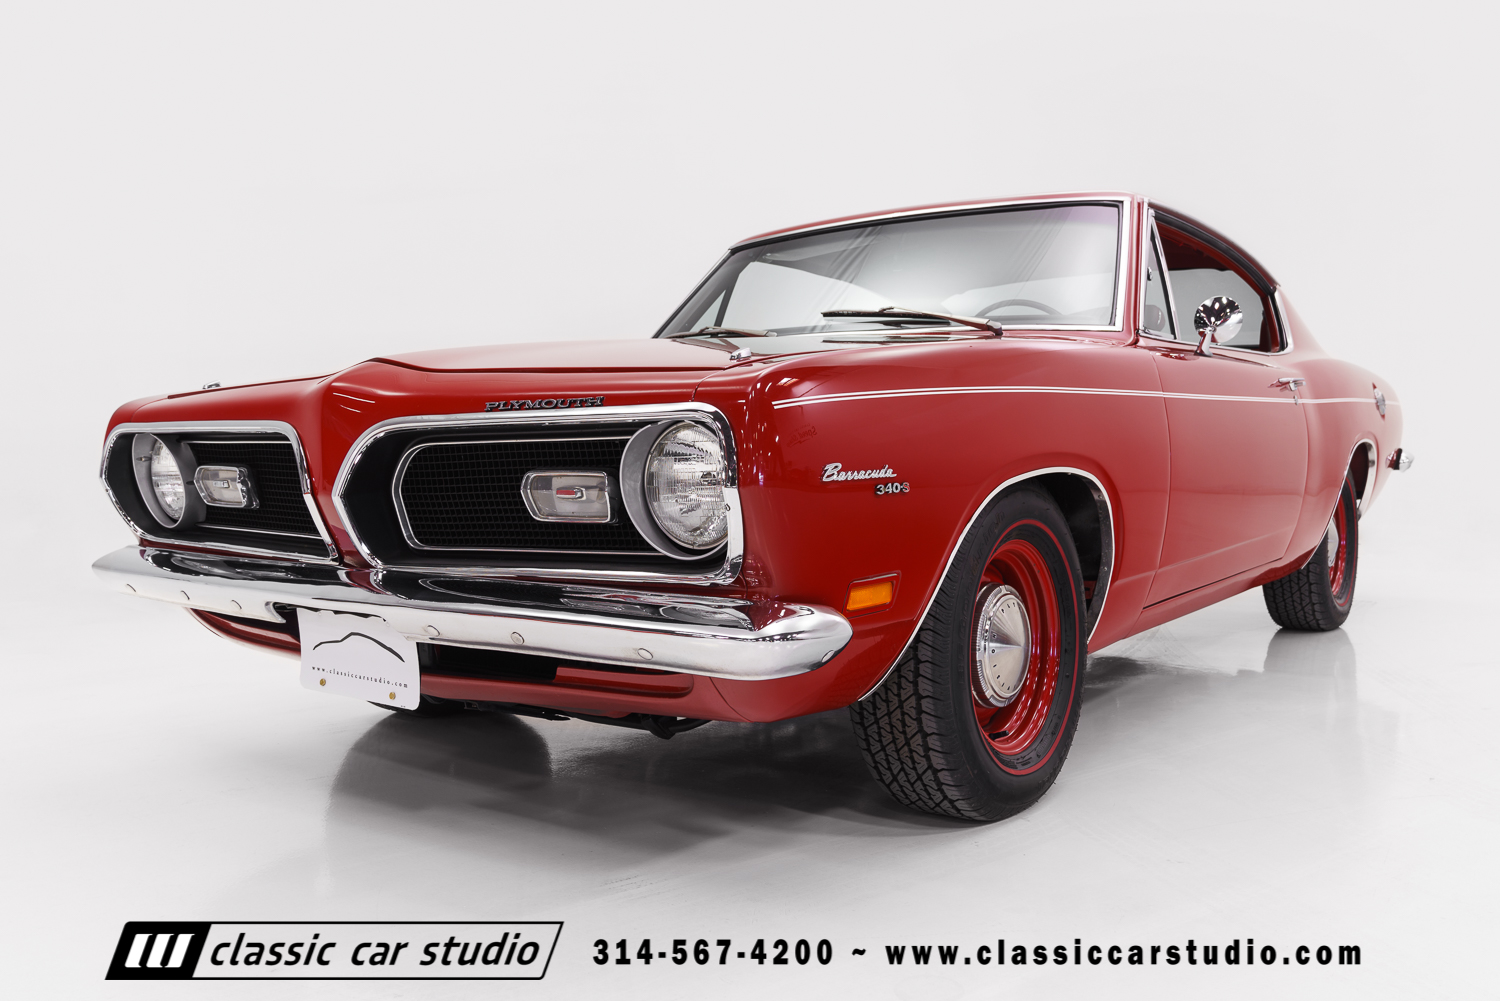 1969 Plymouth Barracuda | Classic Car Studio